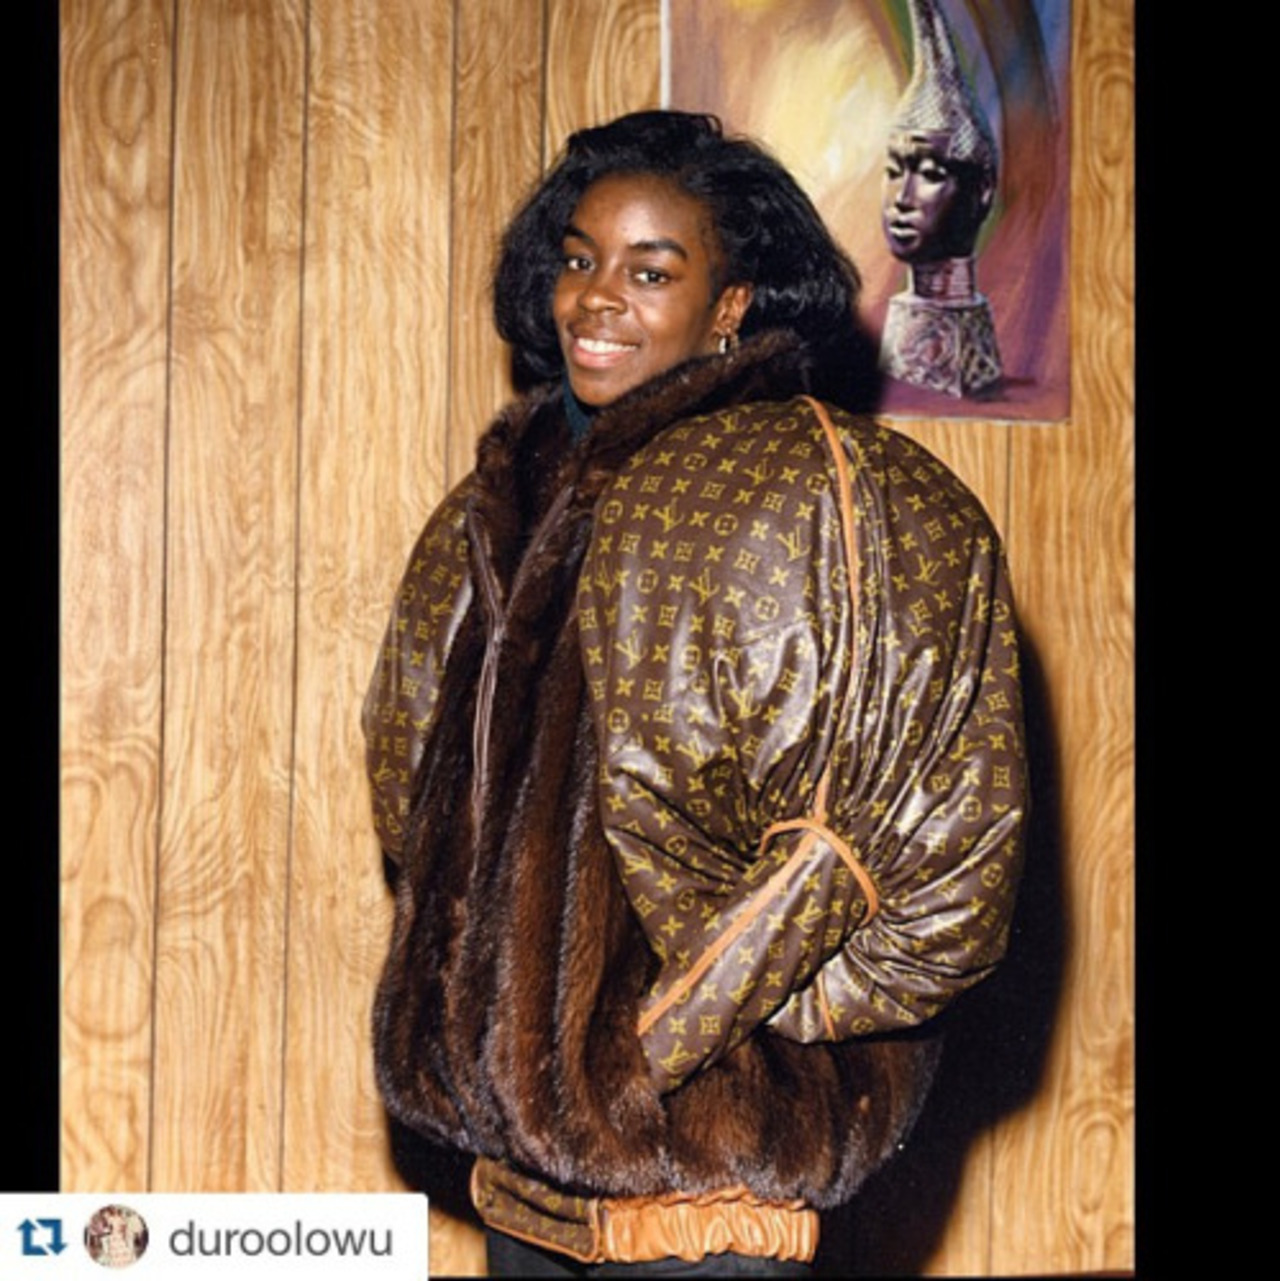 Olympic gold and silver medalist Diane Dixon in jacket by 1980s Harlem Hip Hop tailor Dapper Dan. #style #hiphop #chic #harlem #DapperDanHarlem. Hear Dapper Dan's story in #FreshDressed